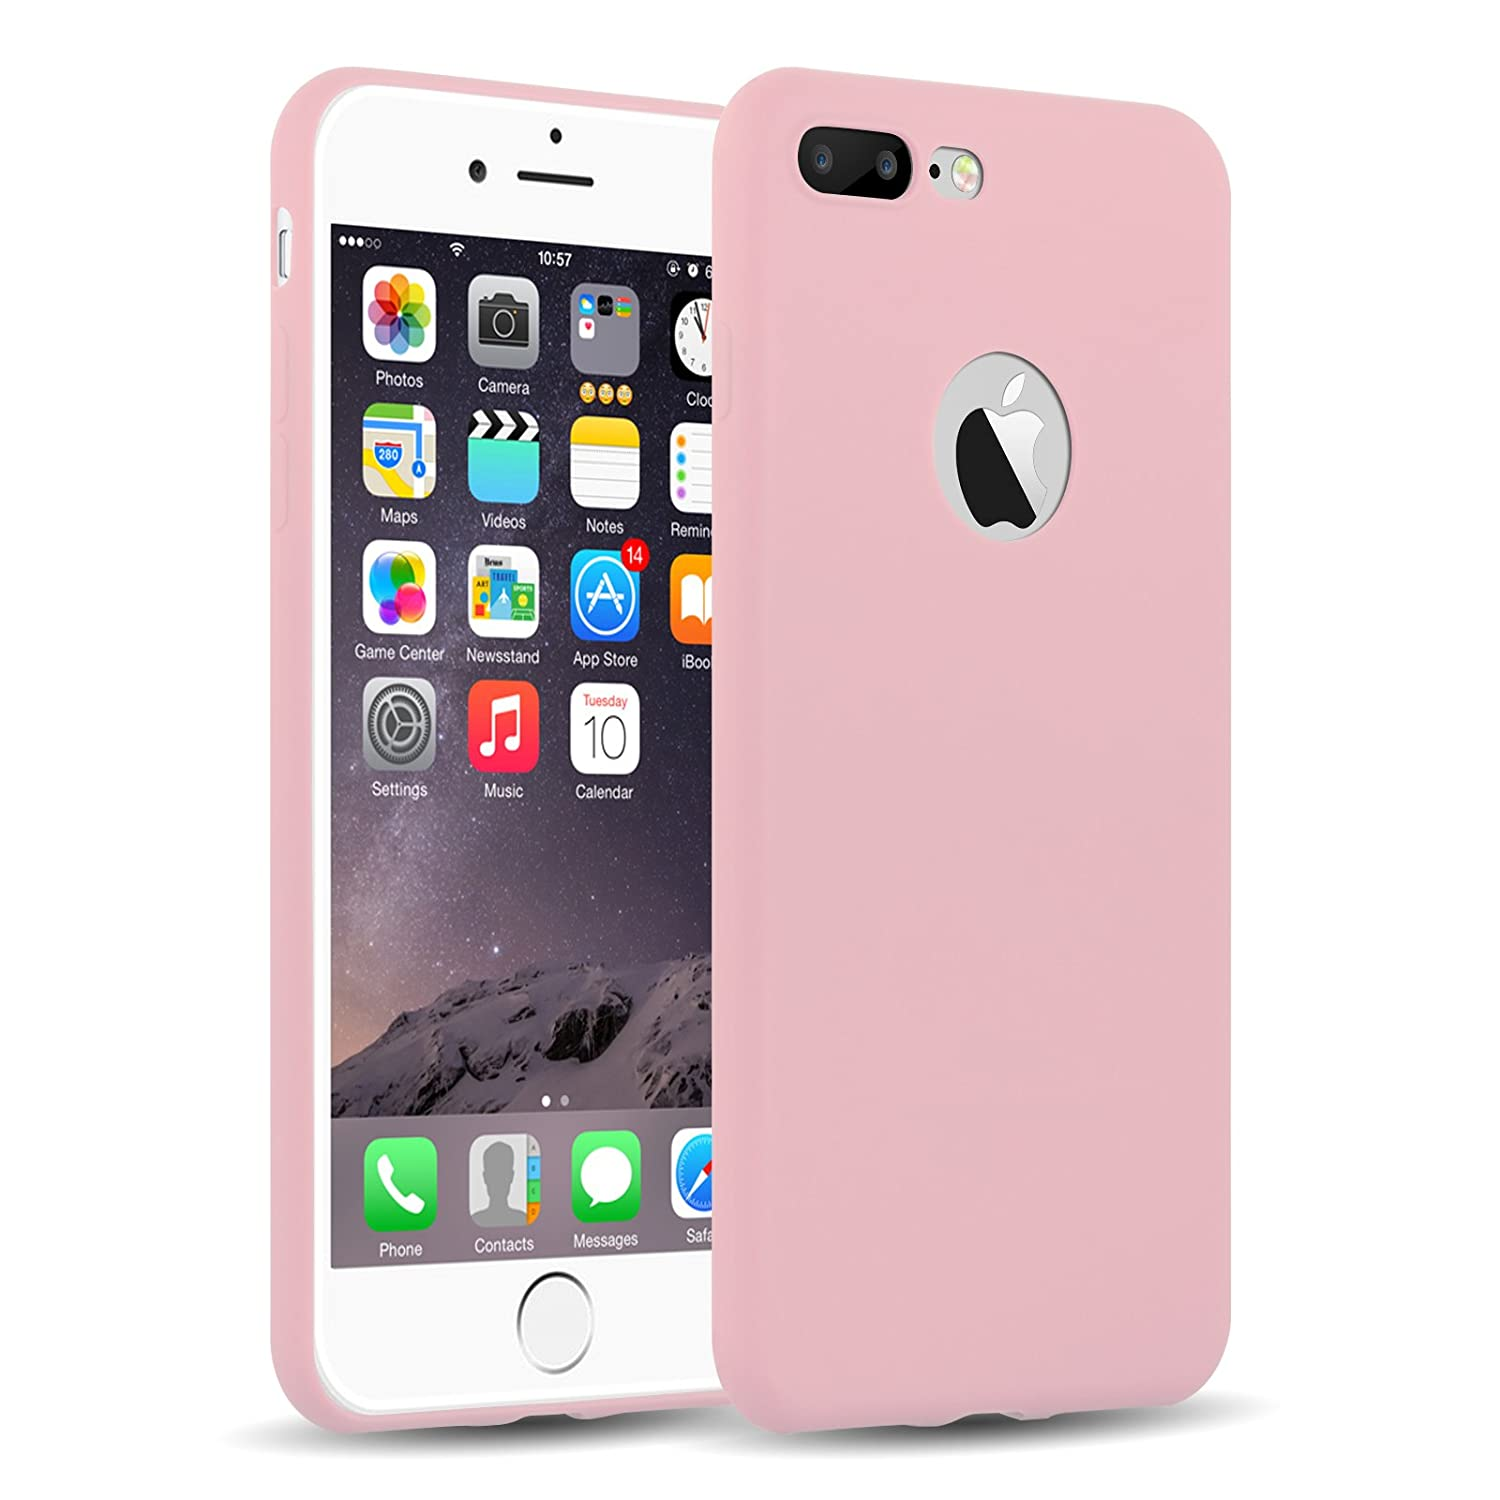 Funda iPhone 8 Plus, iPhone 7 Plus Case, JAMMYLIZARD Carcasa TPU Ultra Fina [ Jelly Case ] De Goma Silicona Back Cover, Rosa Melocotón